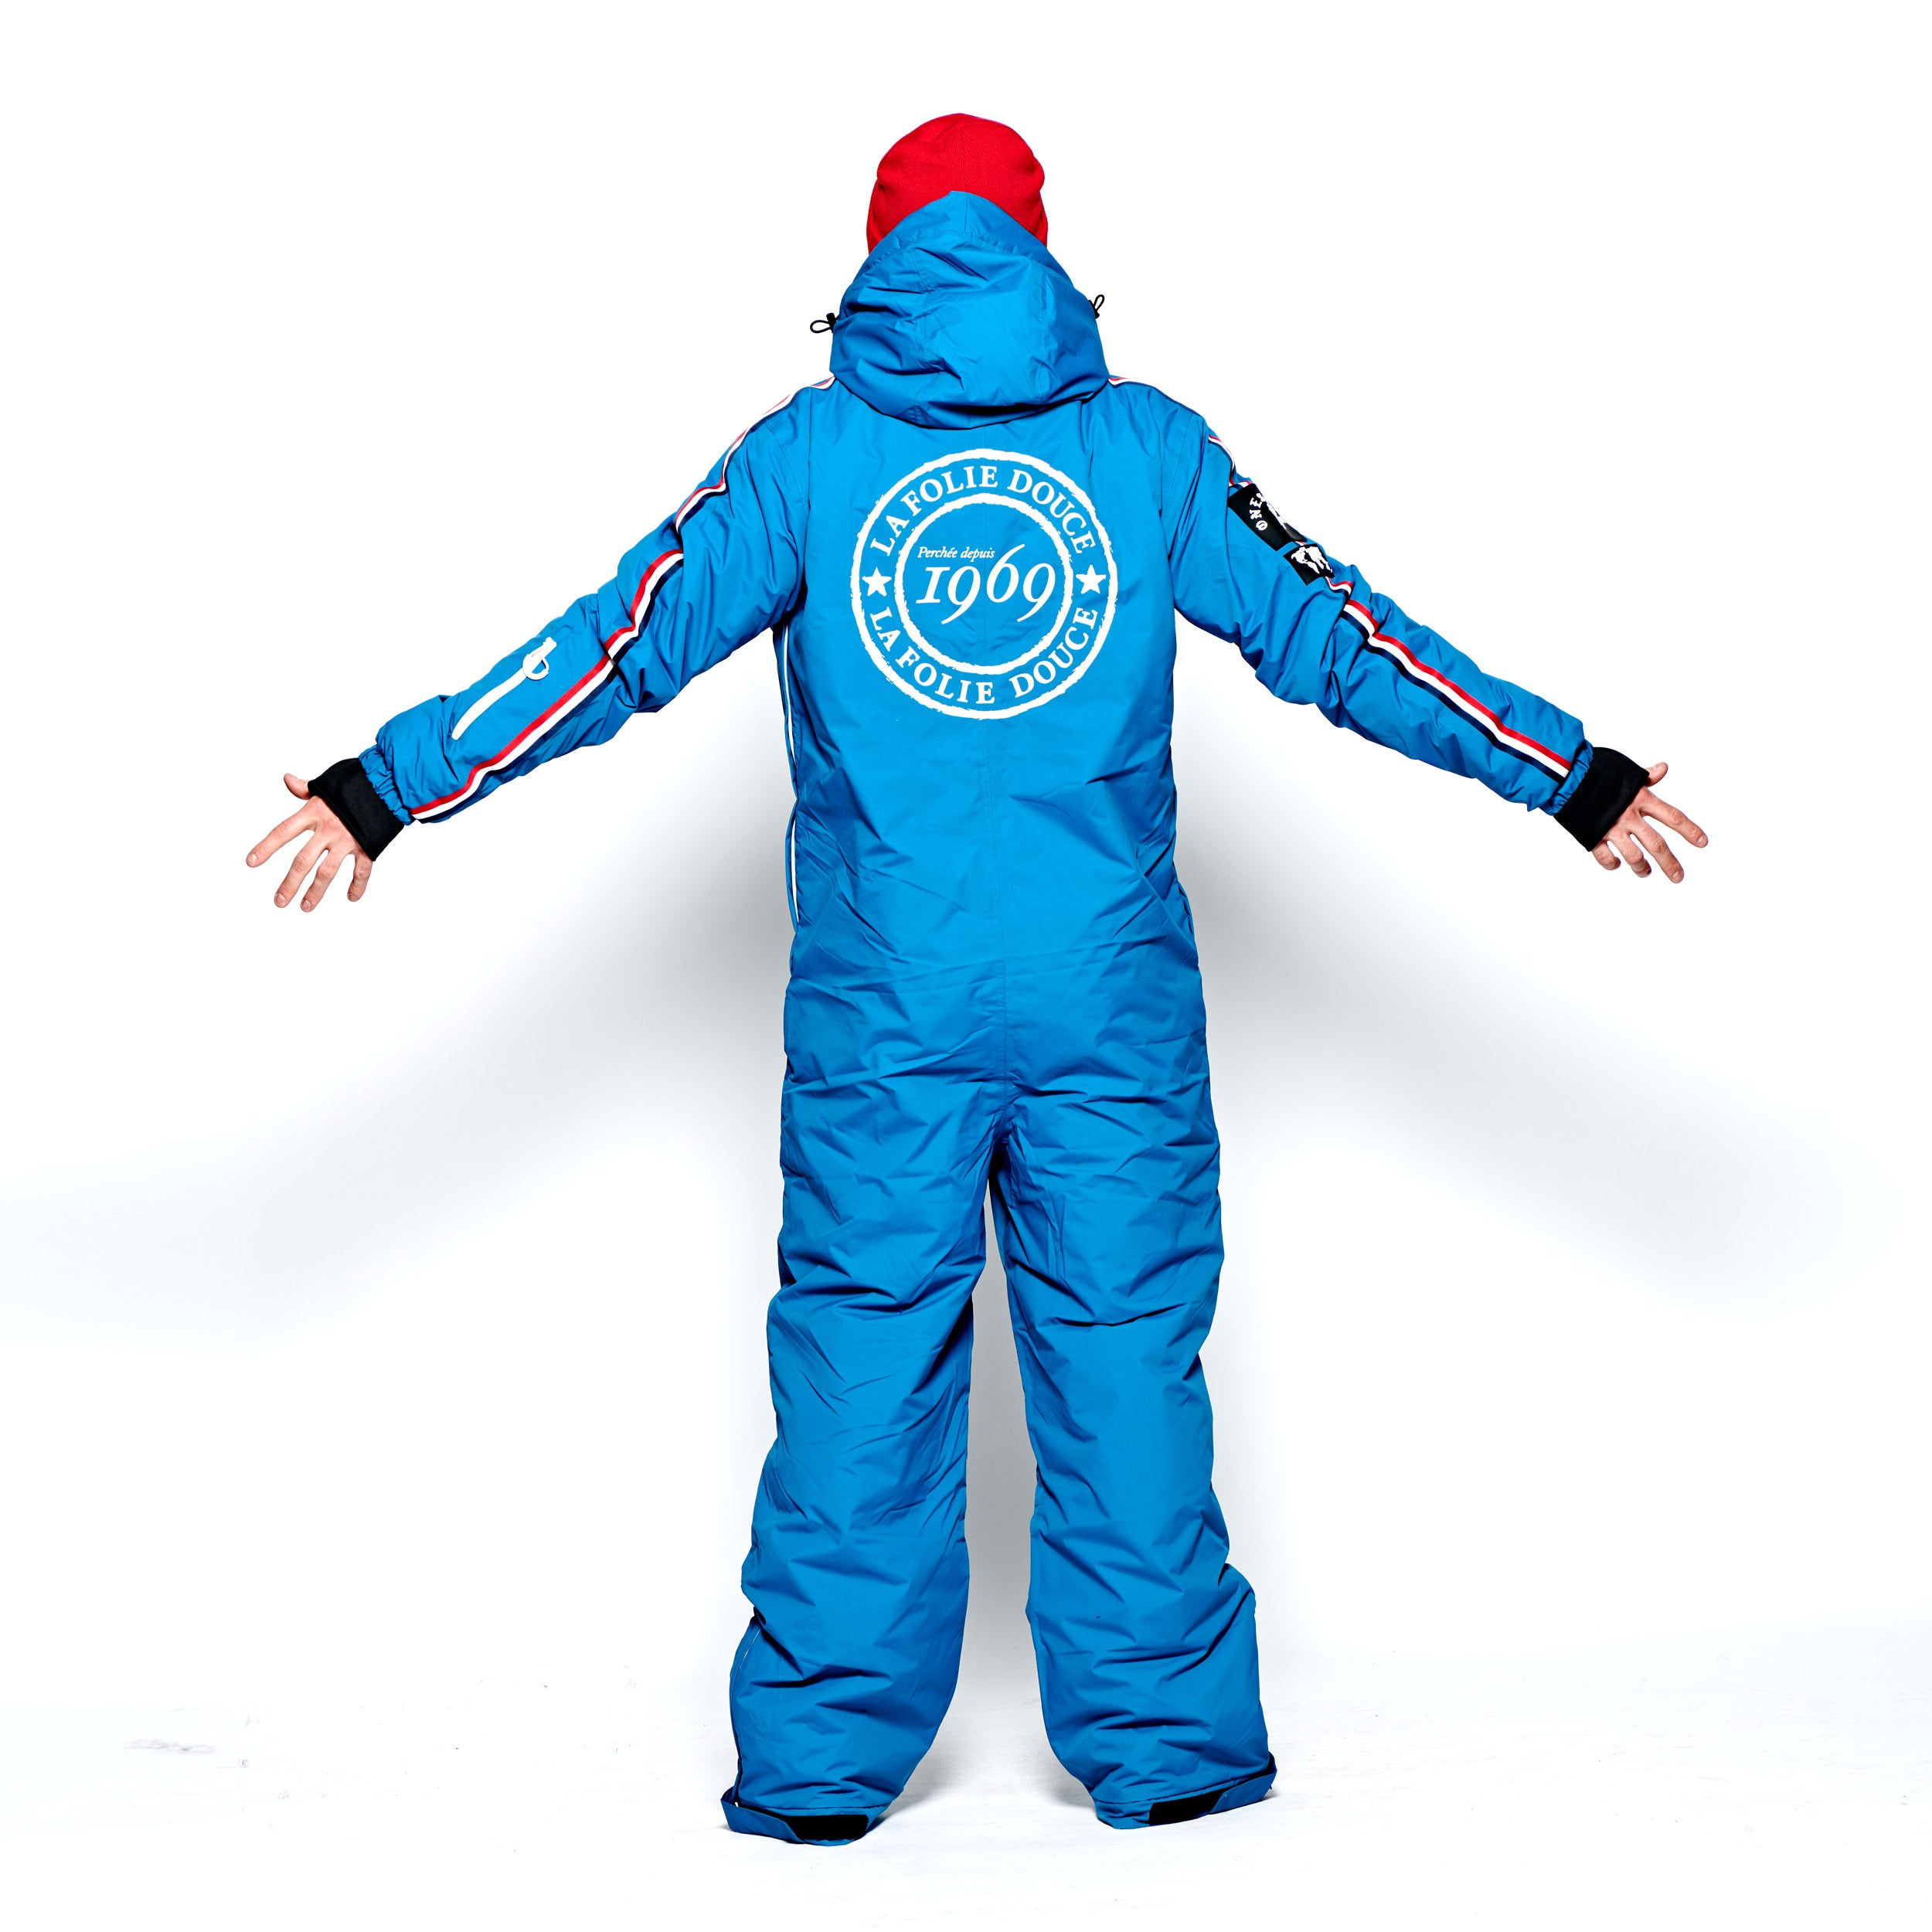 Men's Original Pro Suit - Folie Douce image 2